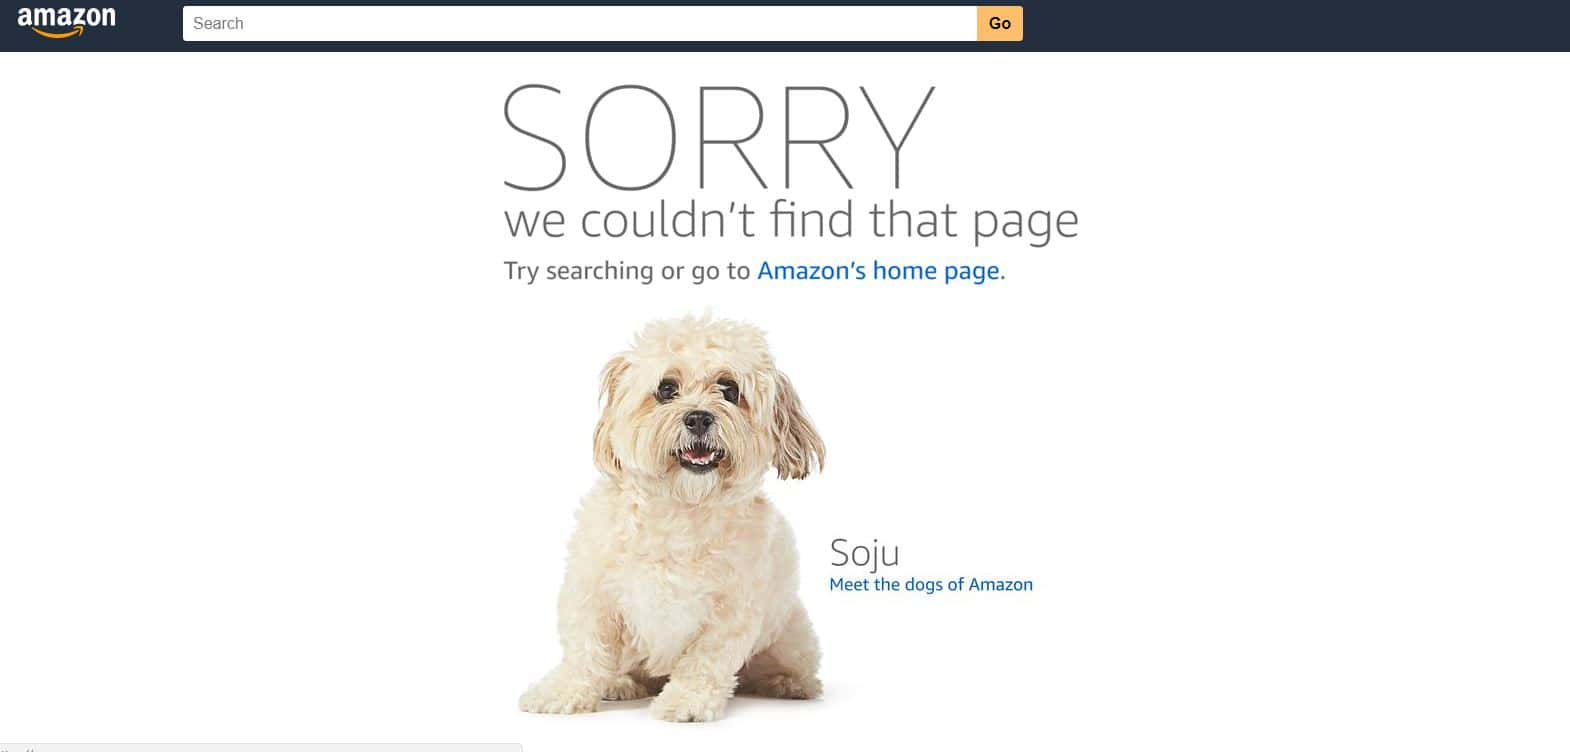 amazon soju - error page